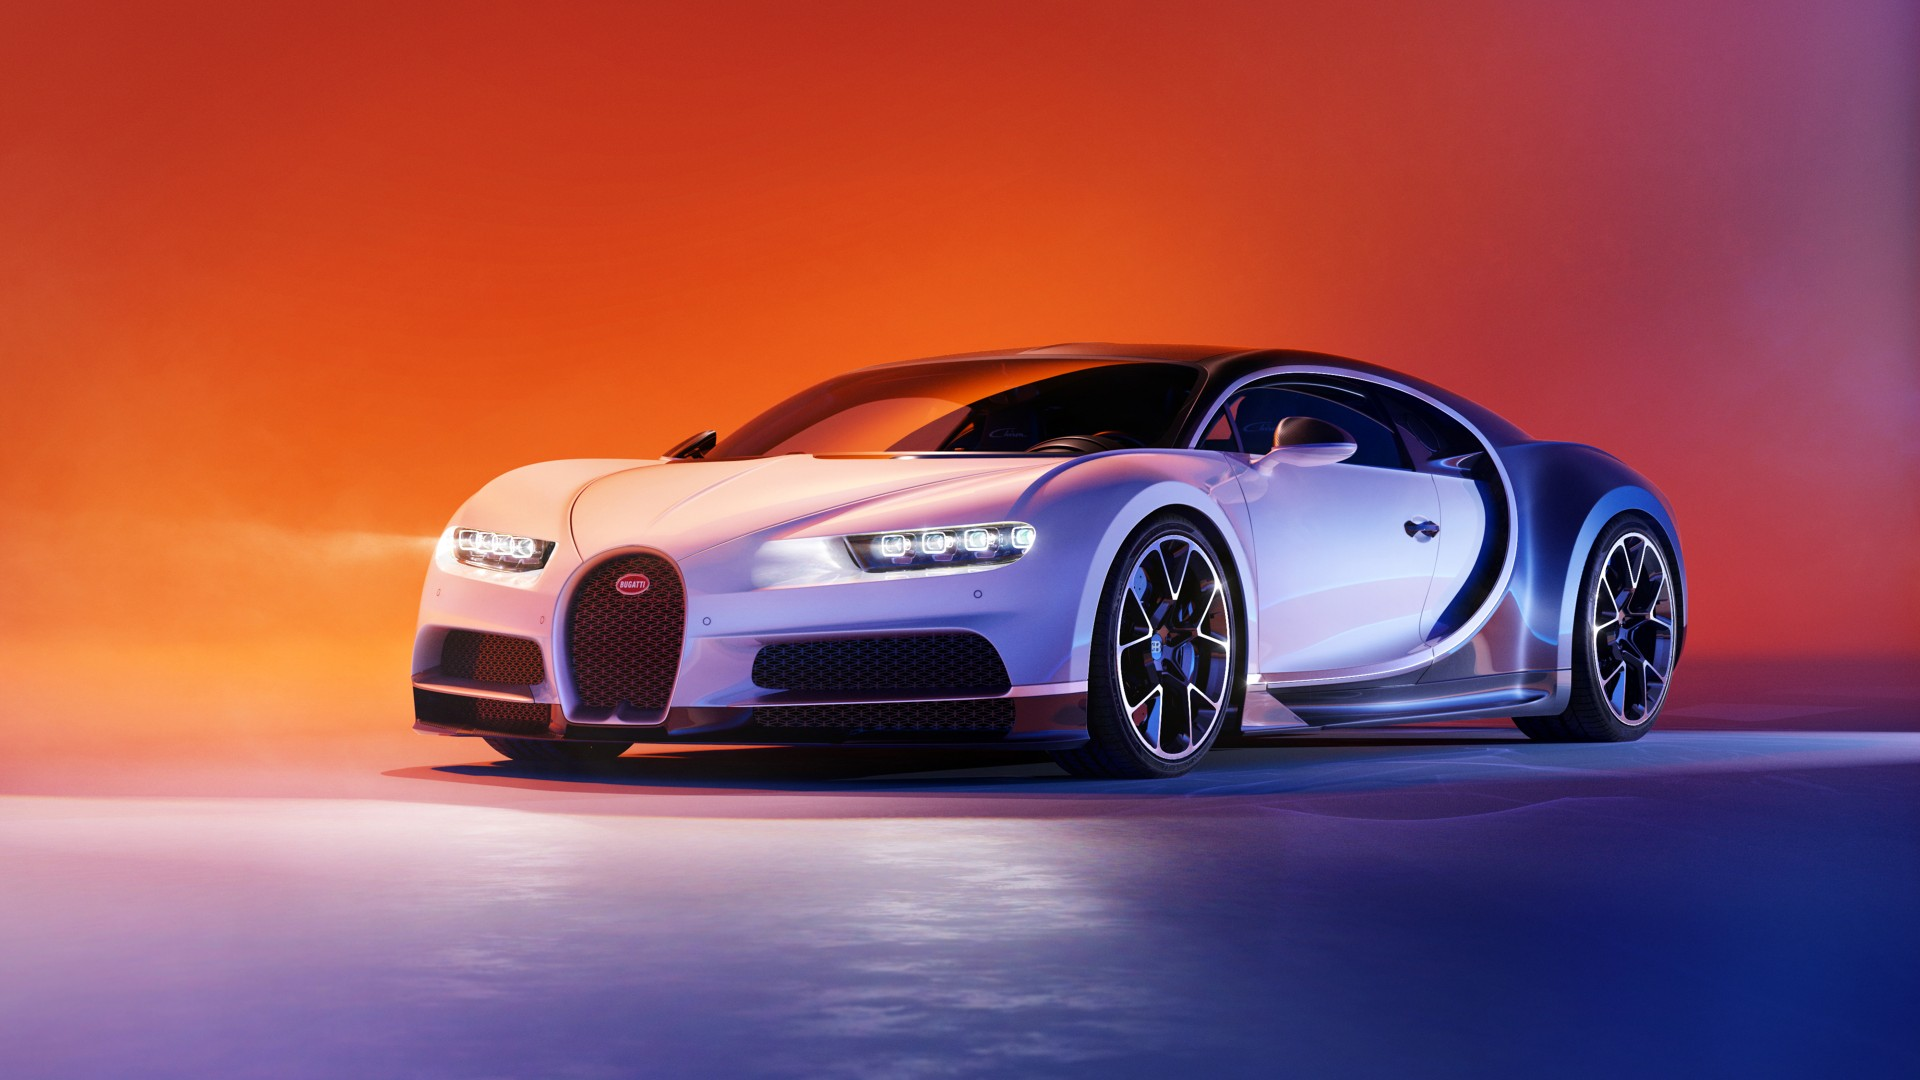 Images Of A Bentley Car Wallpaper Bugatti Chiron 4k Wallpaper Hd Car Wallpapers Id 11530